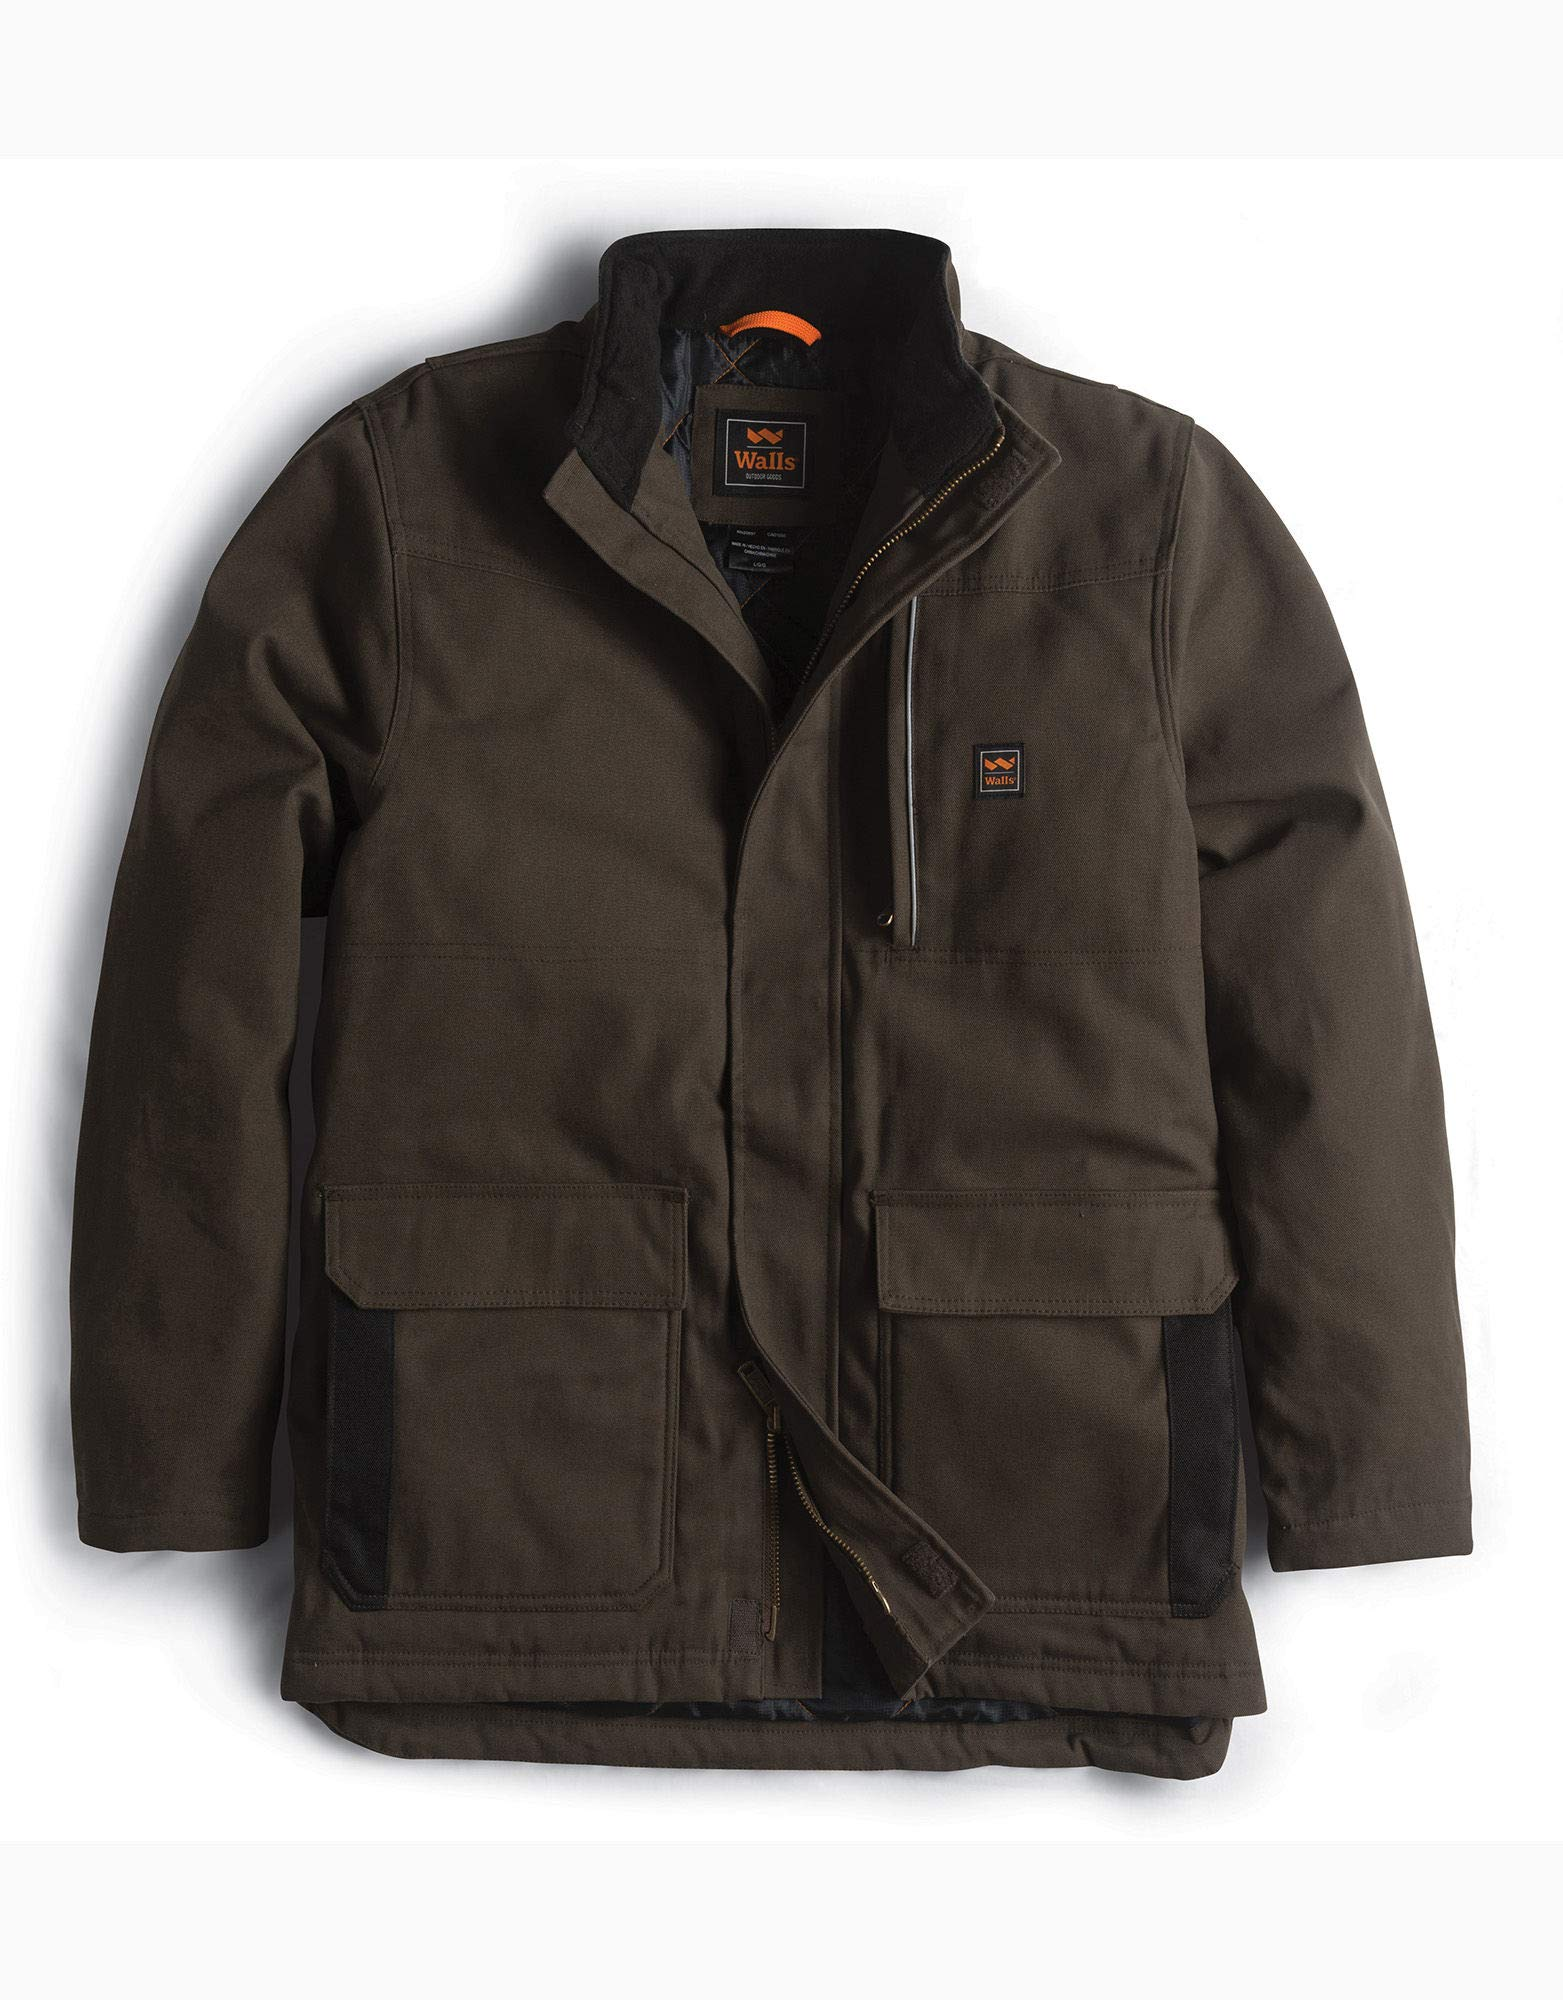 Walls Men's Super Duck Insulated Coat, bark Brown, Extra Large by Walls